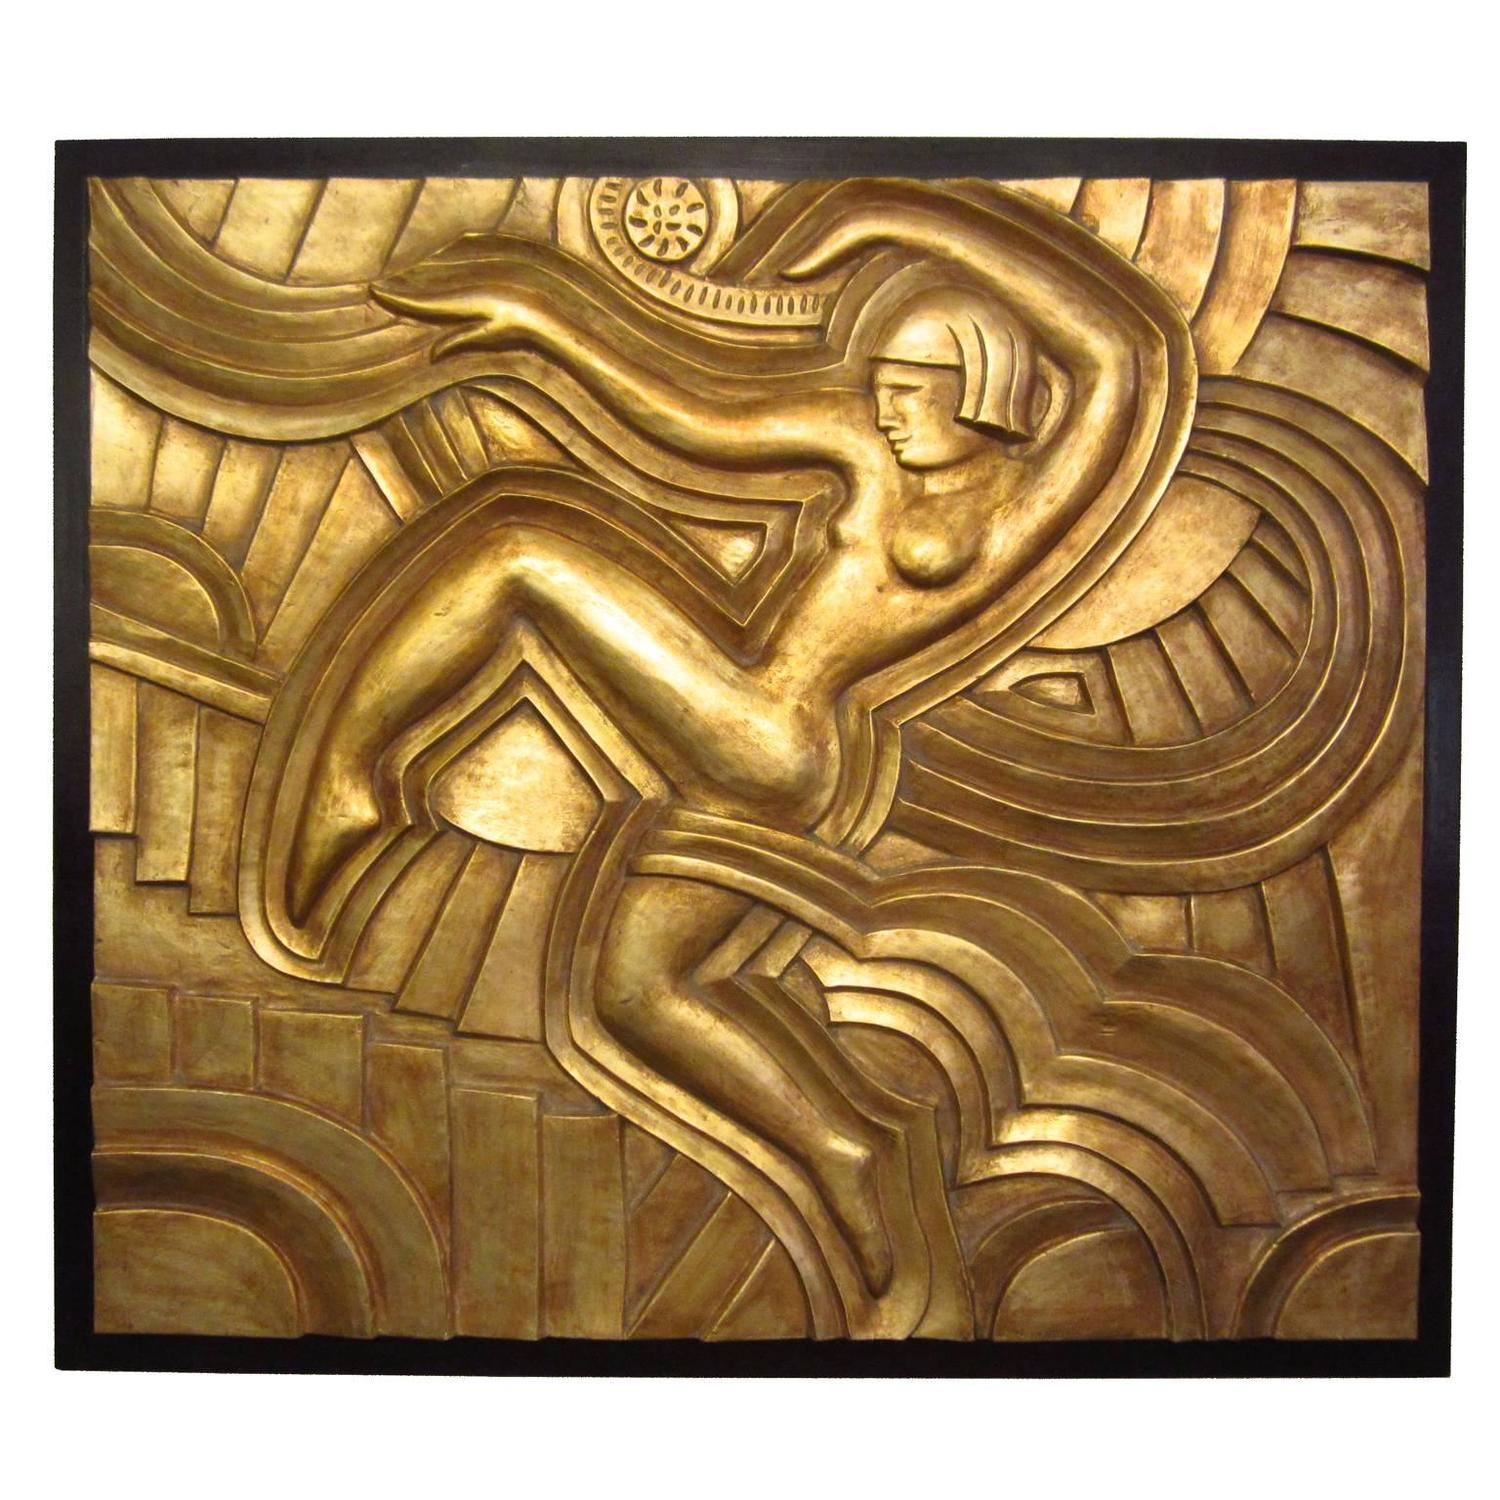 Important Art Deco Mythological Gilt Wall Plaque For Sale at 1stdibs